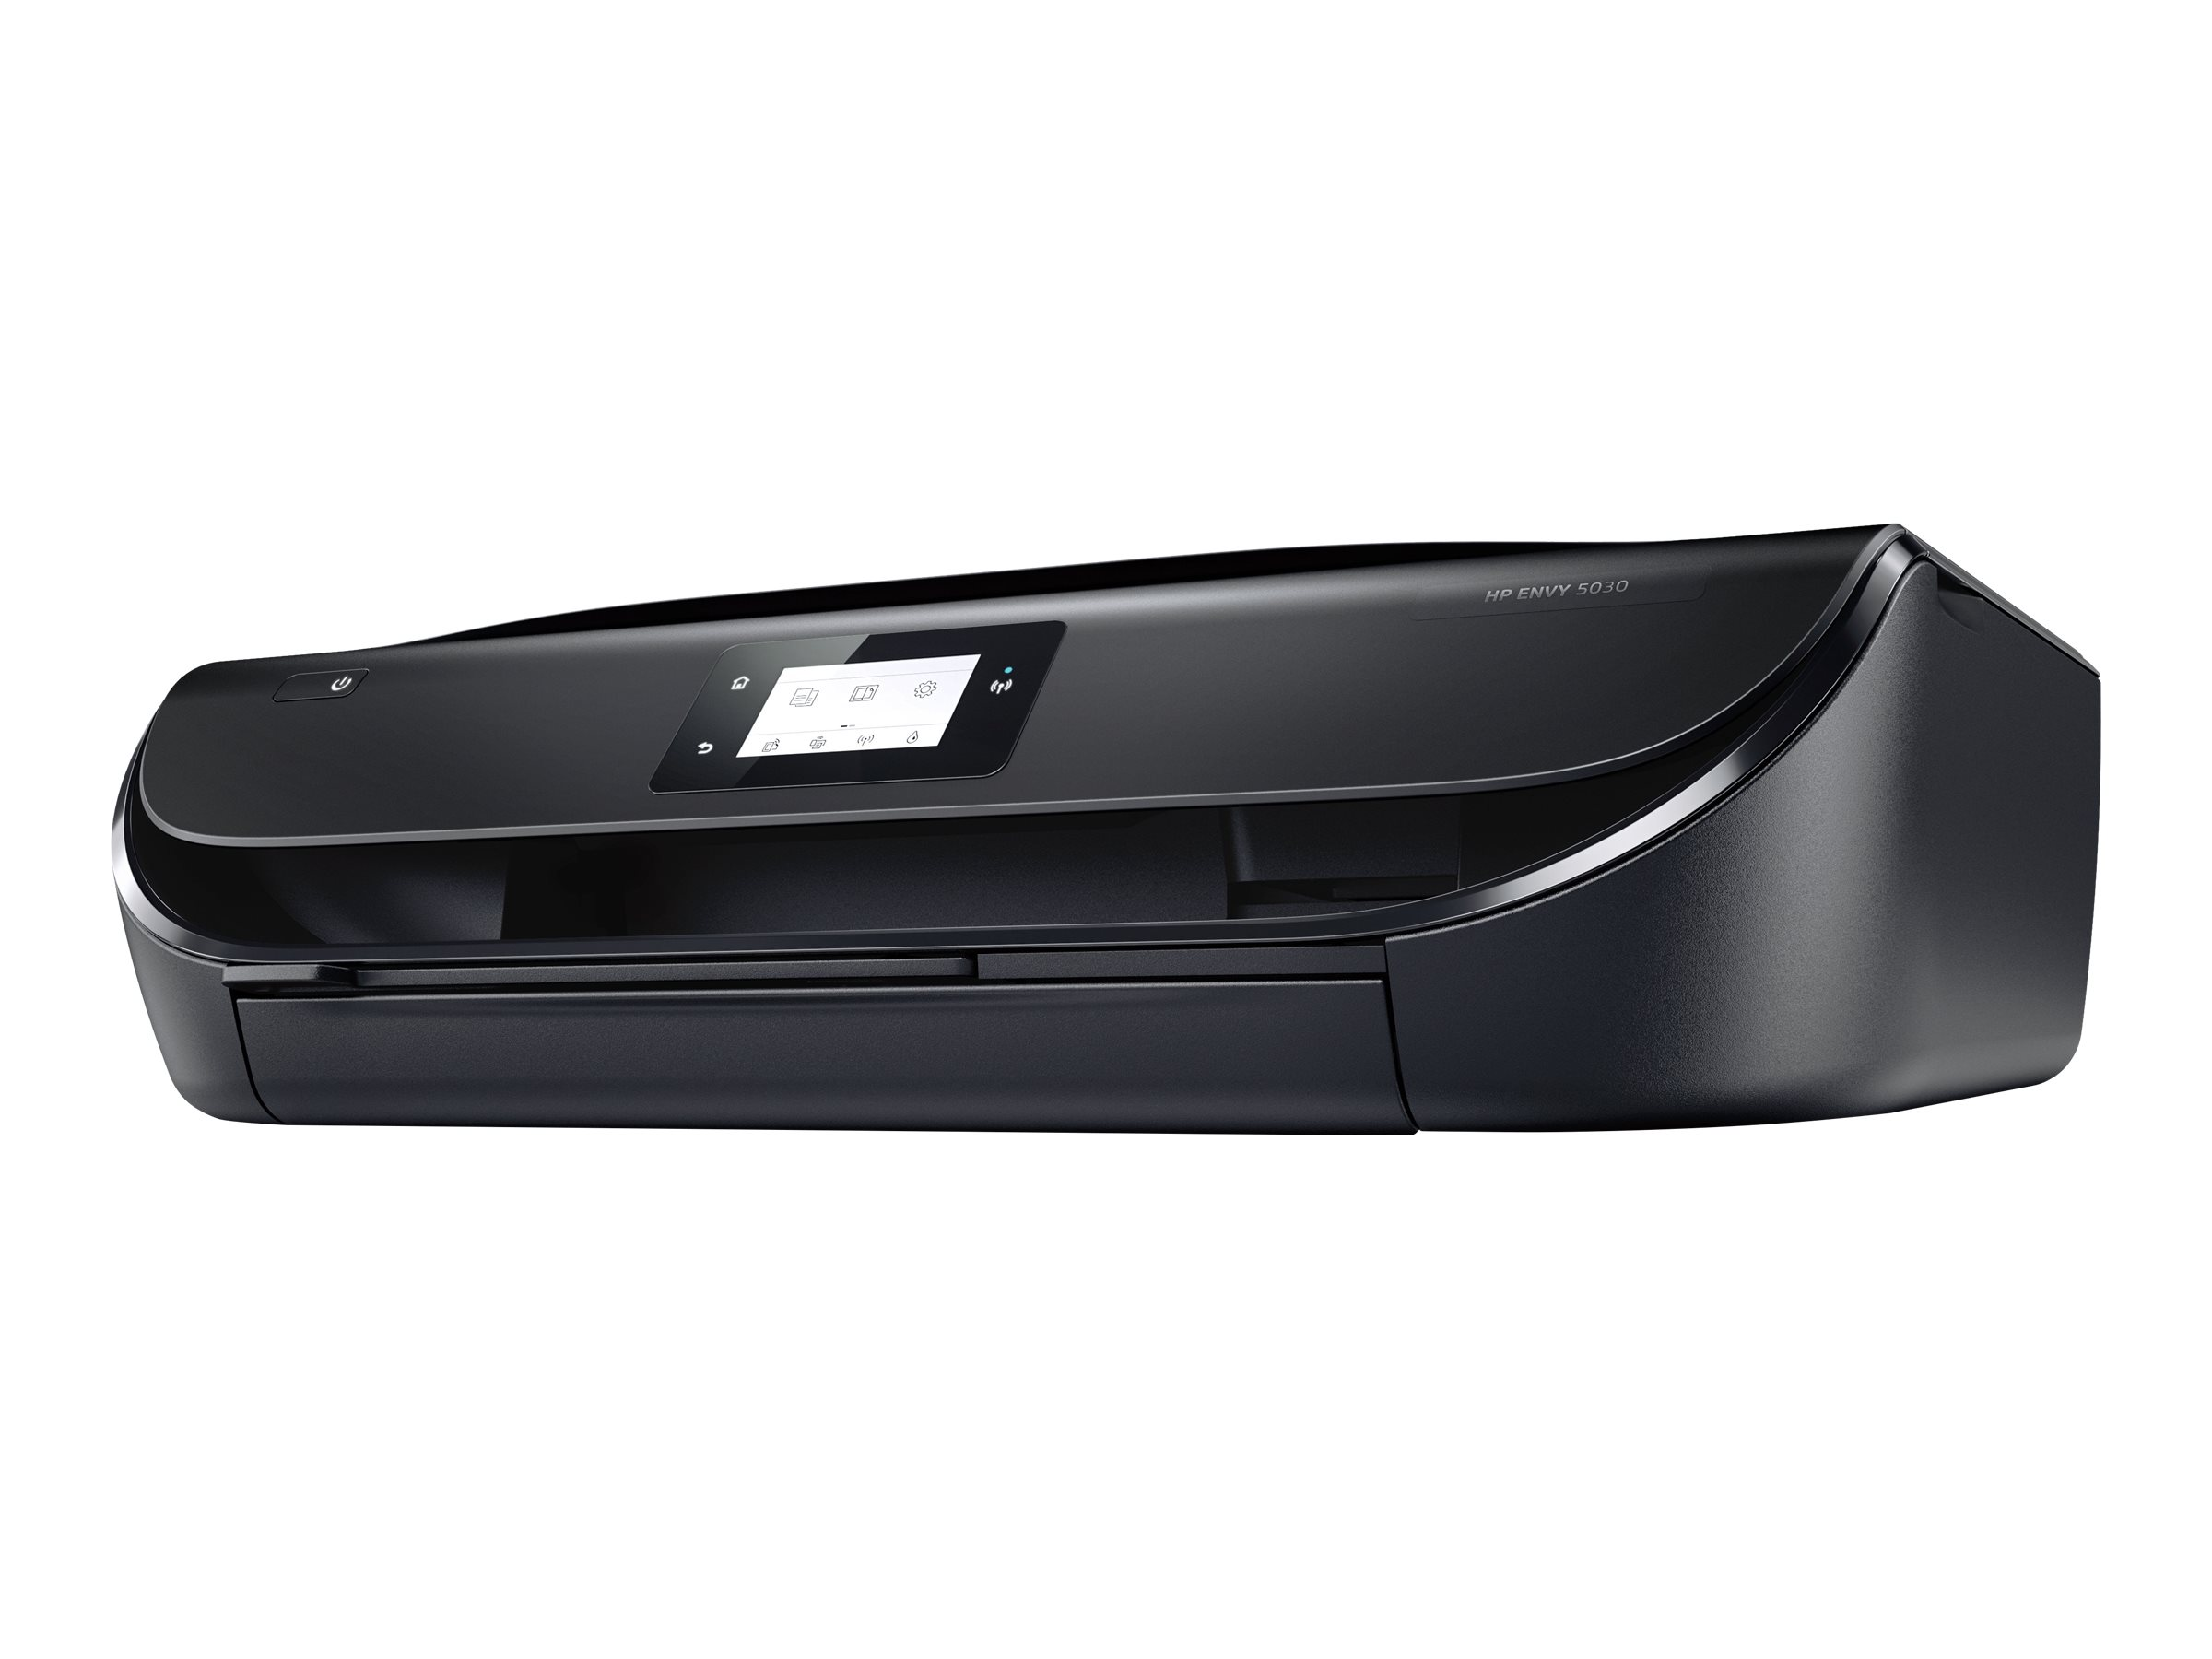 HP Envy 5030 All-in-One - imprimante multifonctions jet d'encre couleur A4 - Wifi, USB - recto-verso